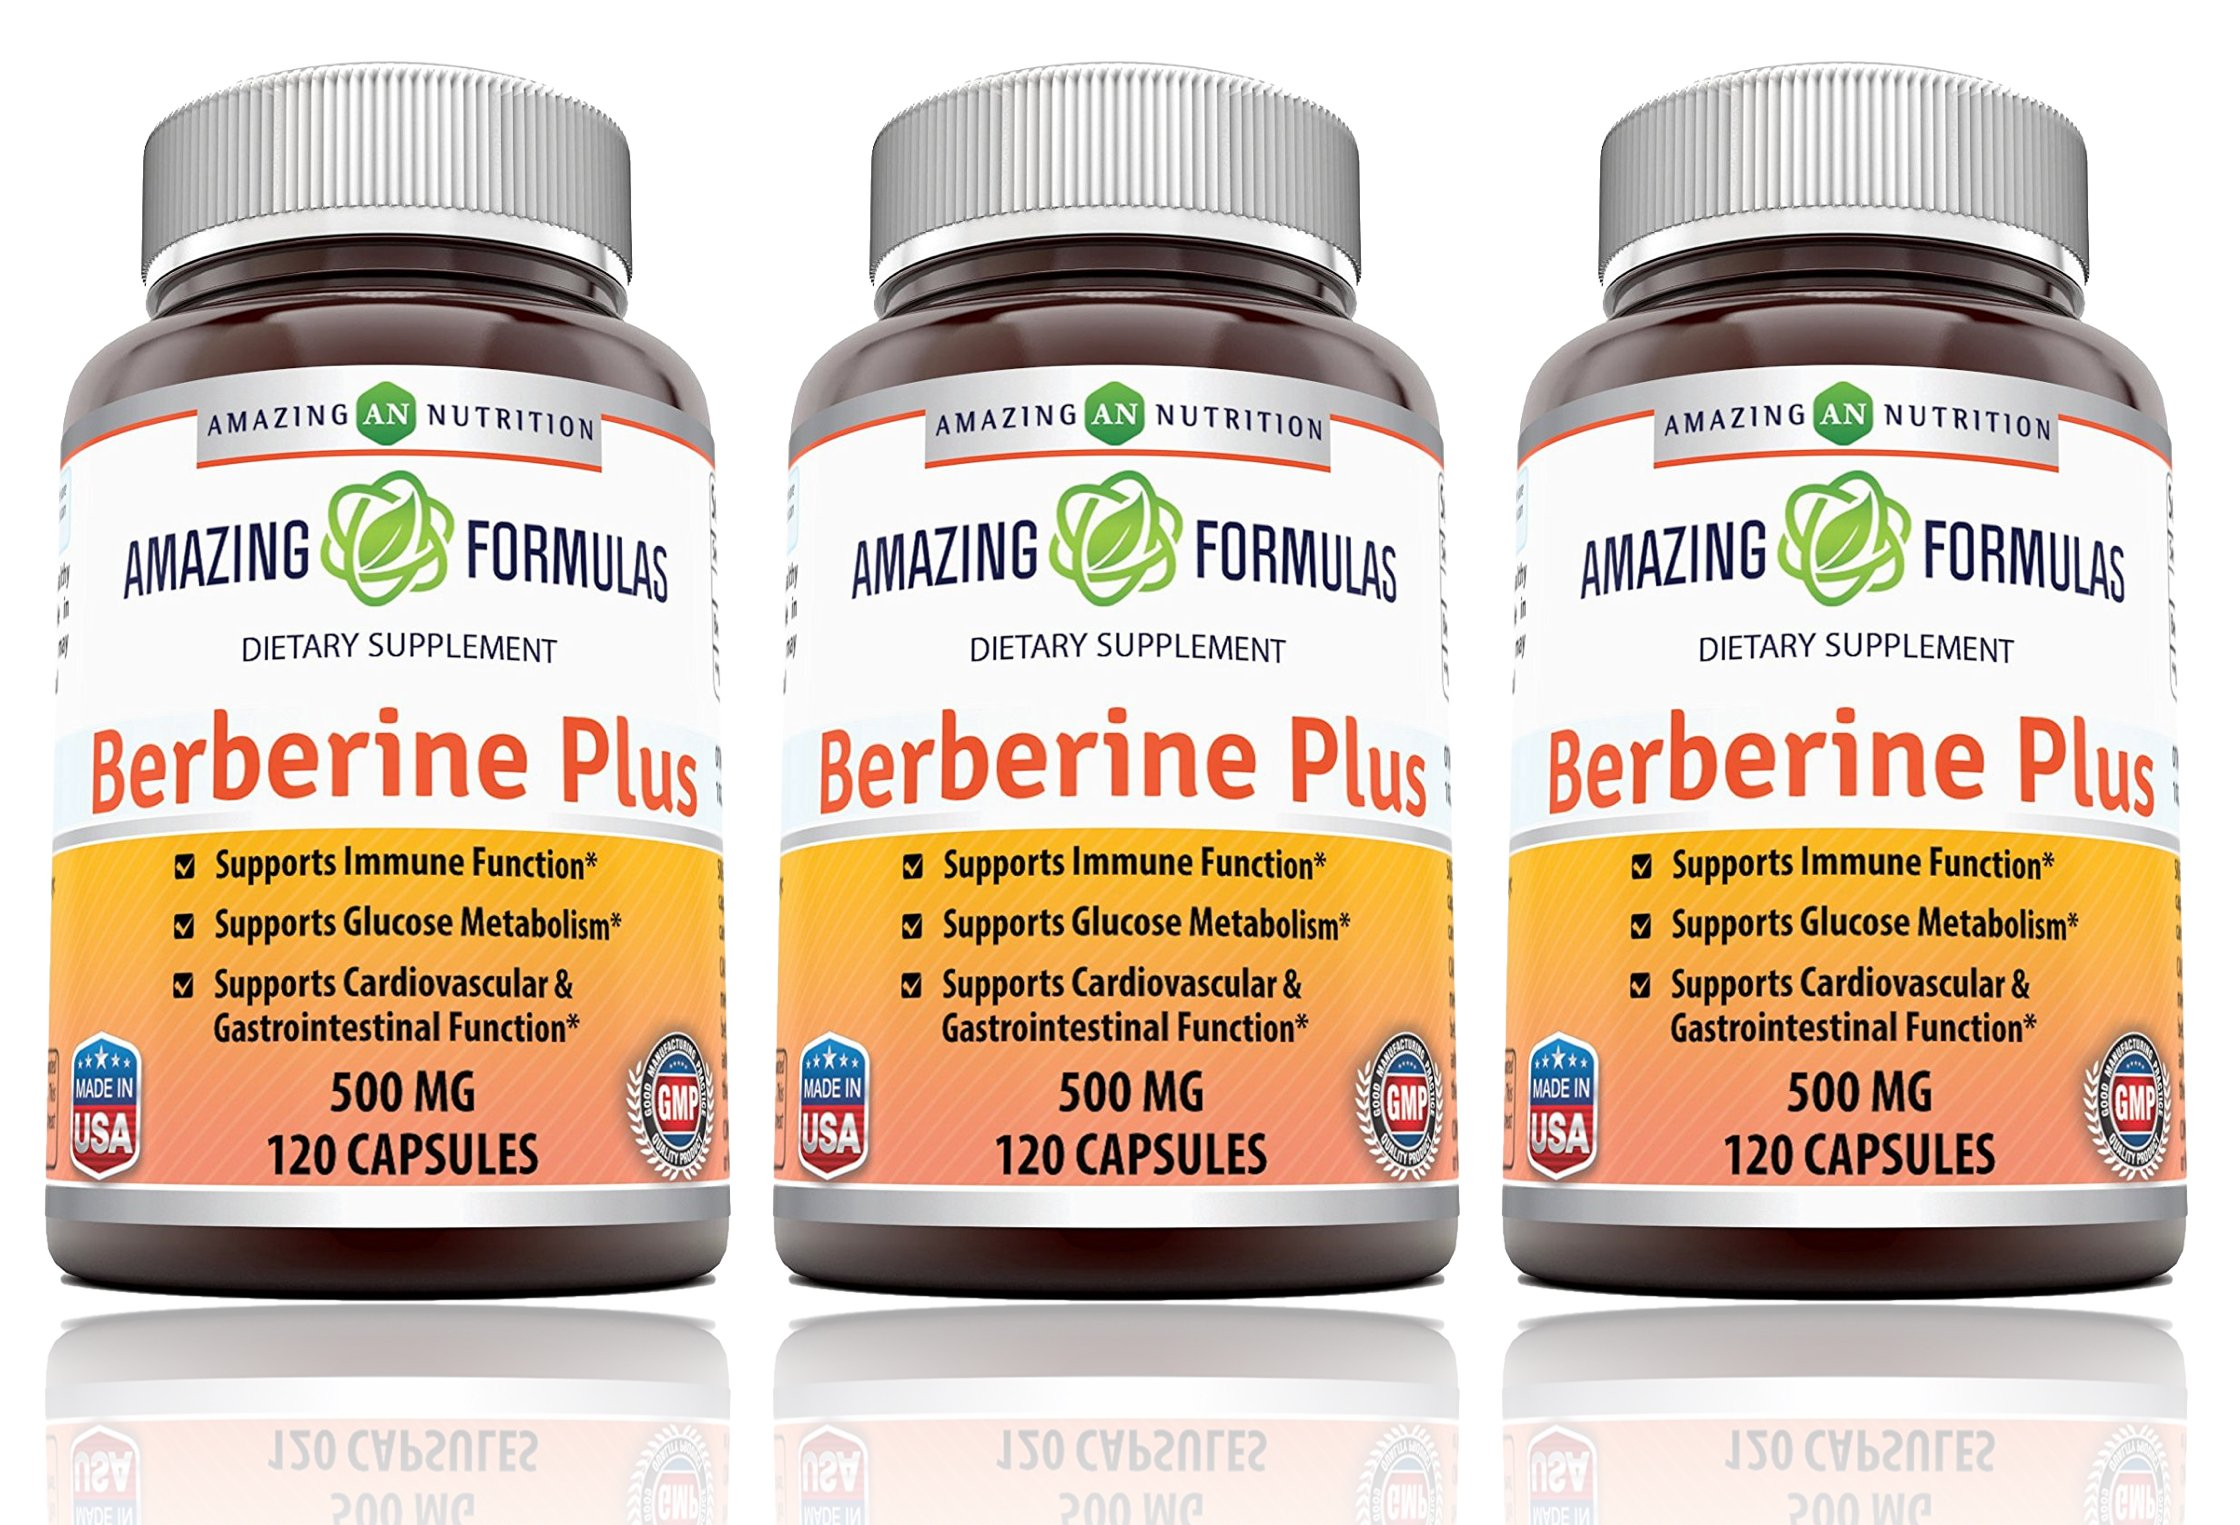 Amazing Nutrition Berberine Plus 500 mg 120 Capsules - Supports immune system - Supports glucose metabolism - Aid in healthy weight management - (3 Pack)